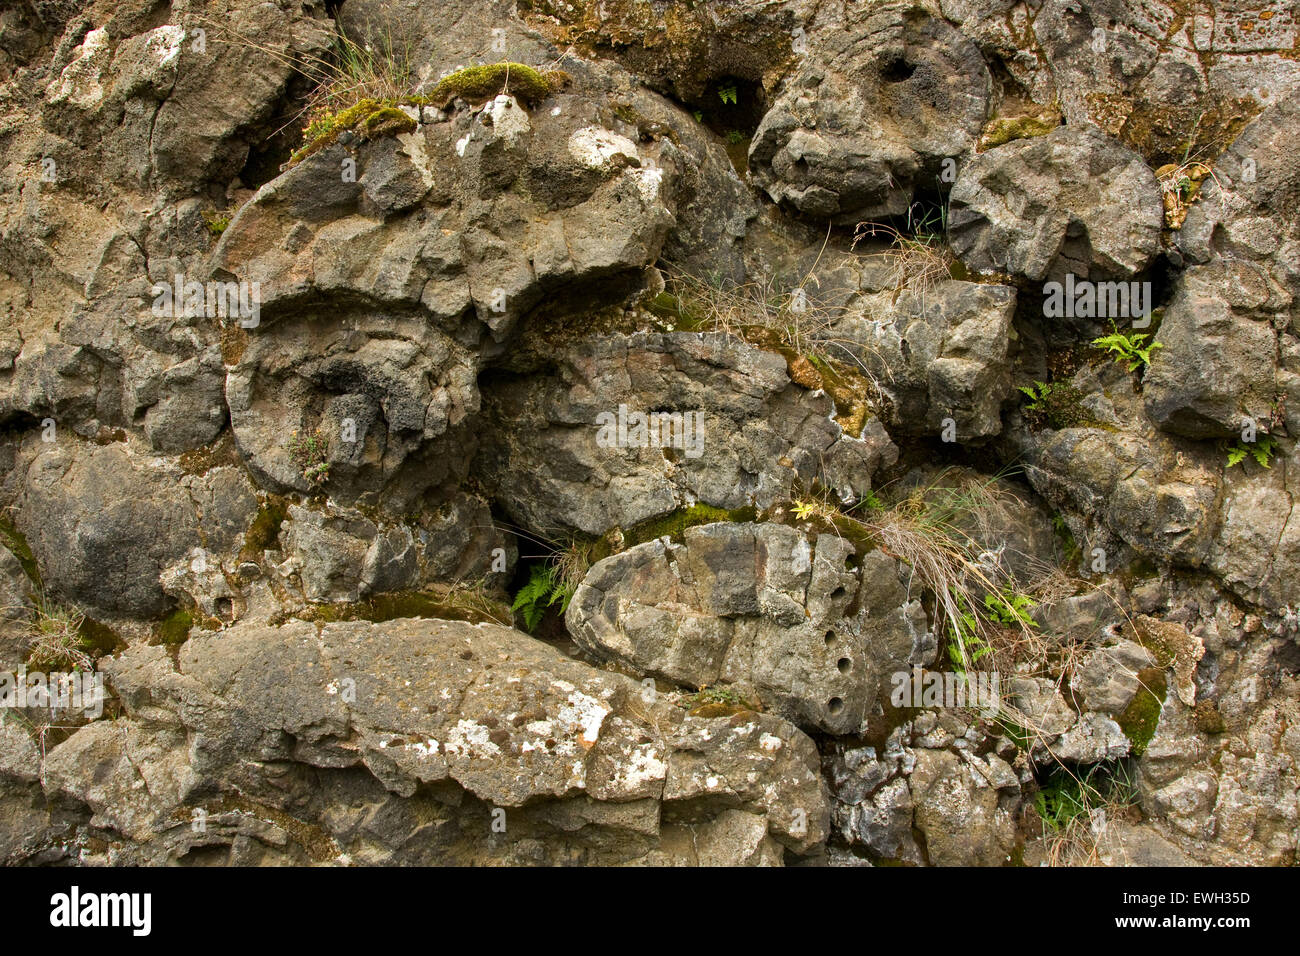 Pillow lava in Iceland - Stock Image